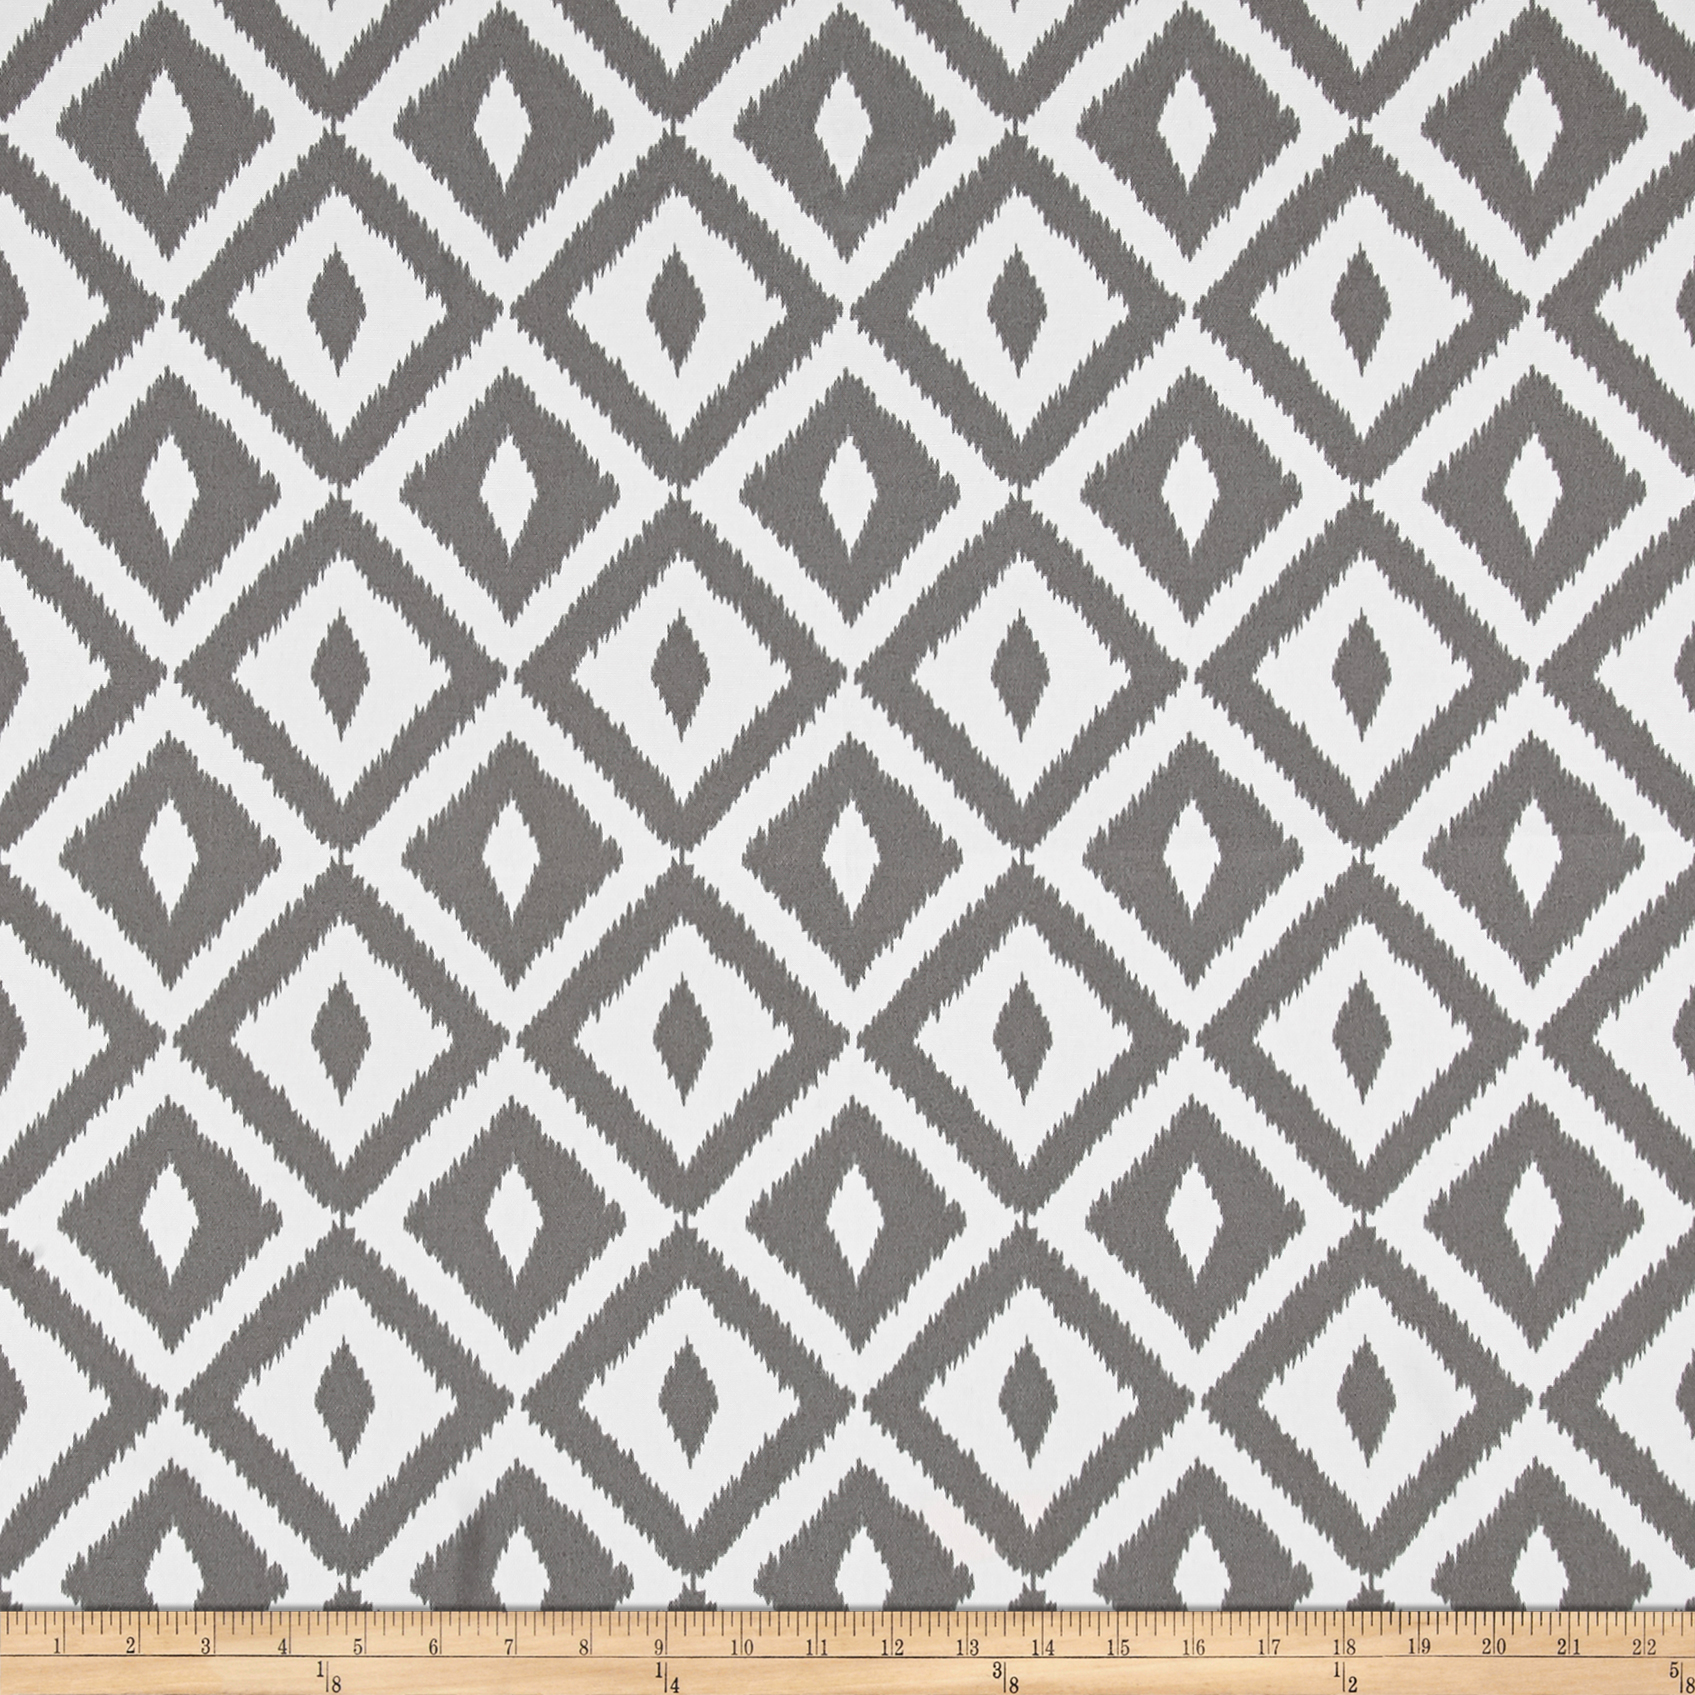 Terrasol Outdoor Aztec Charcoal Fabric by Tempro in USA